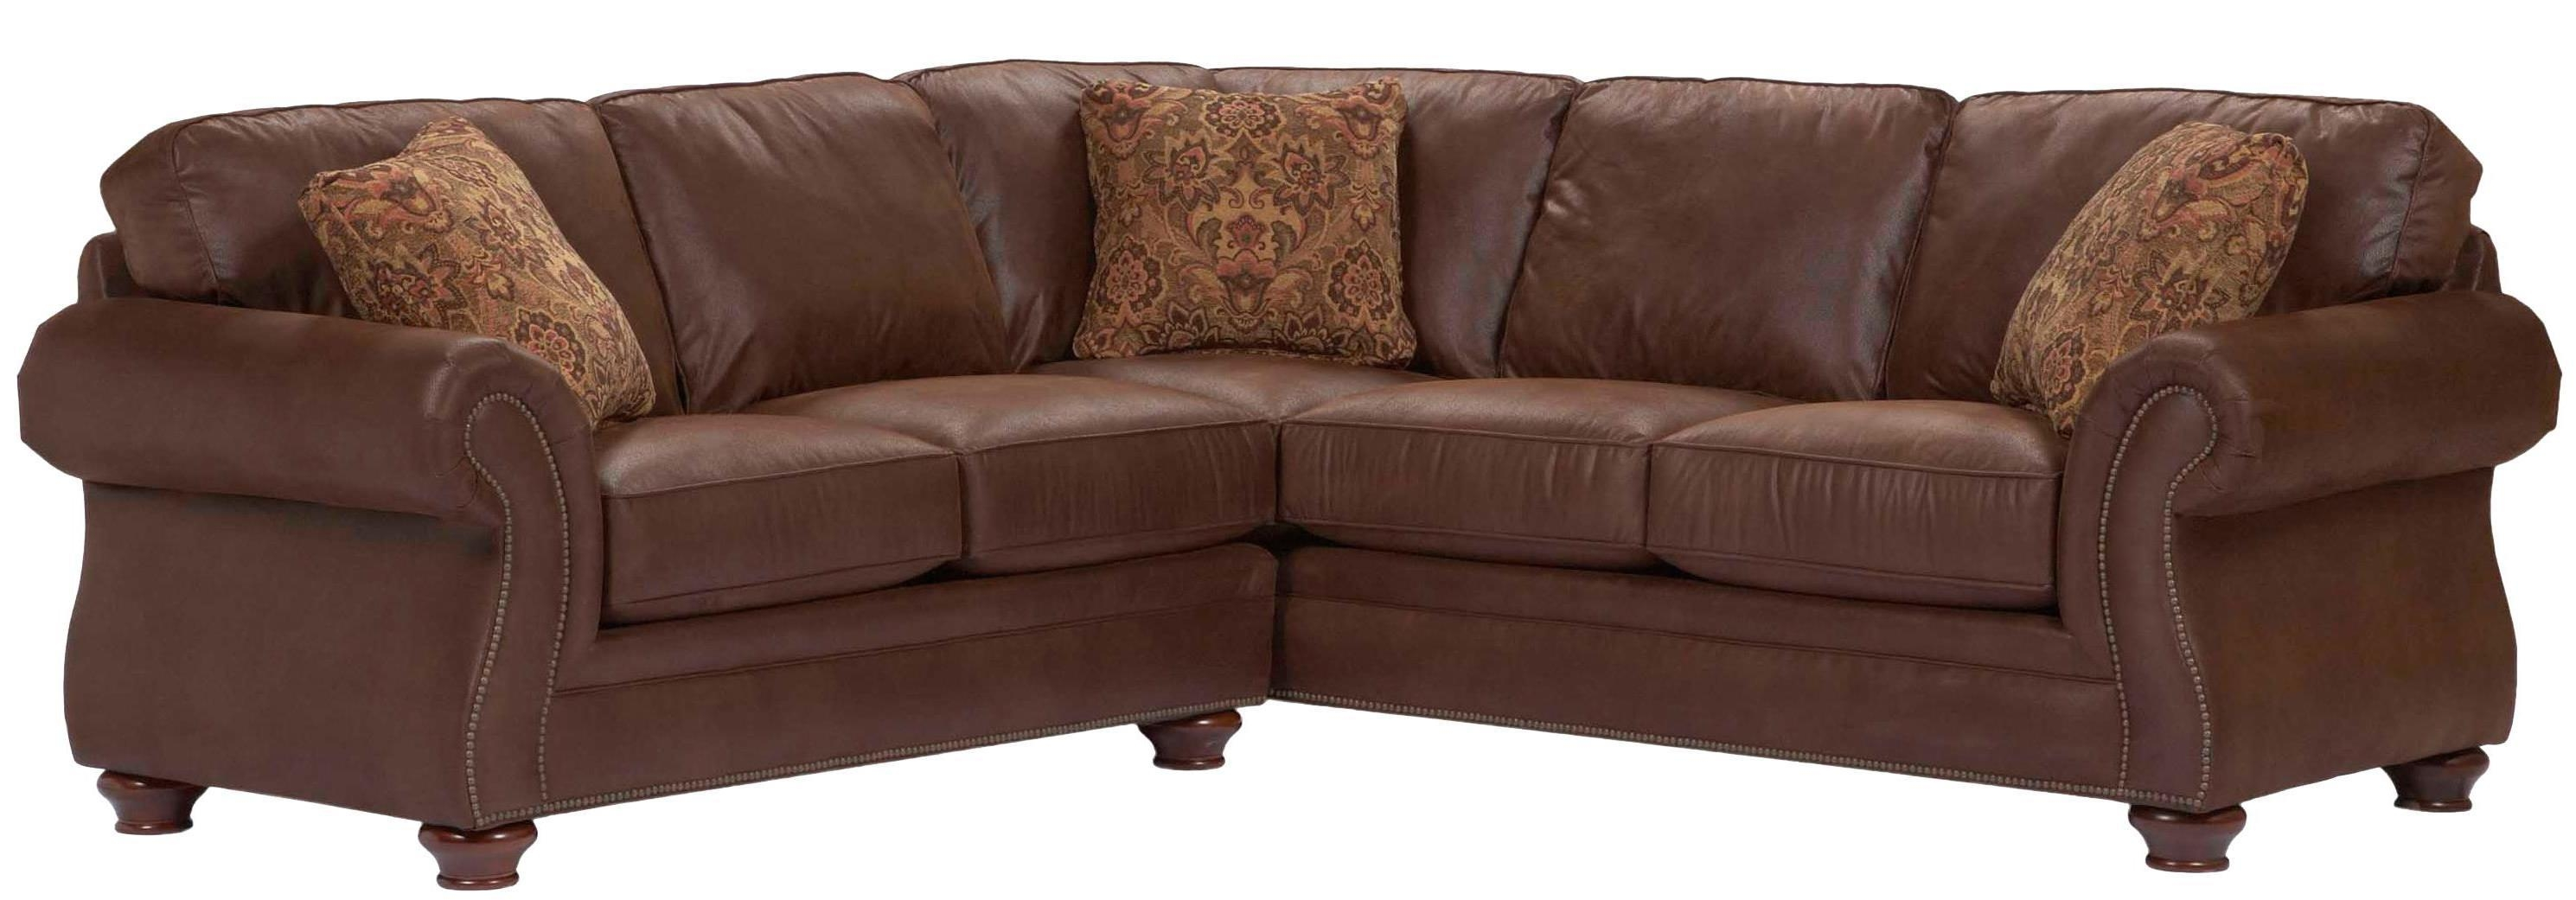 Broyhill Furniture Laramie 2 Piece Corner Sectional Sofa – Lindy's Throughout Broyhill Sectional Sofa (View 10 of 15)